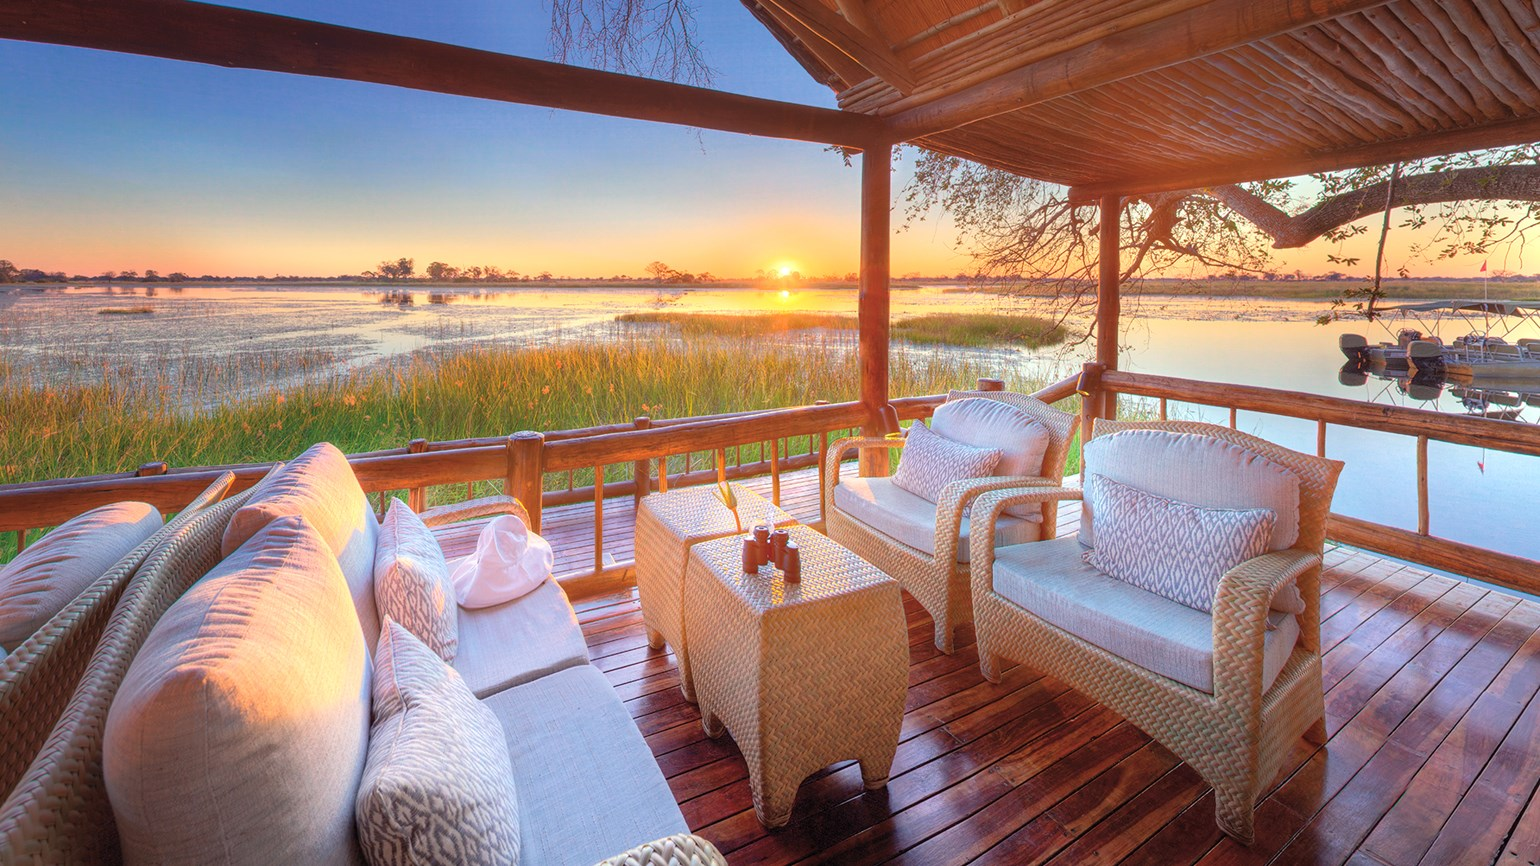 Belmond safari lodge to reopen in Botswana's Okavango Delta